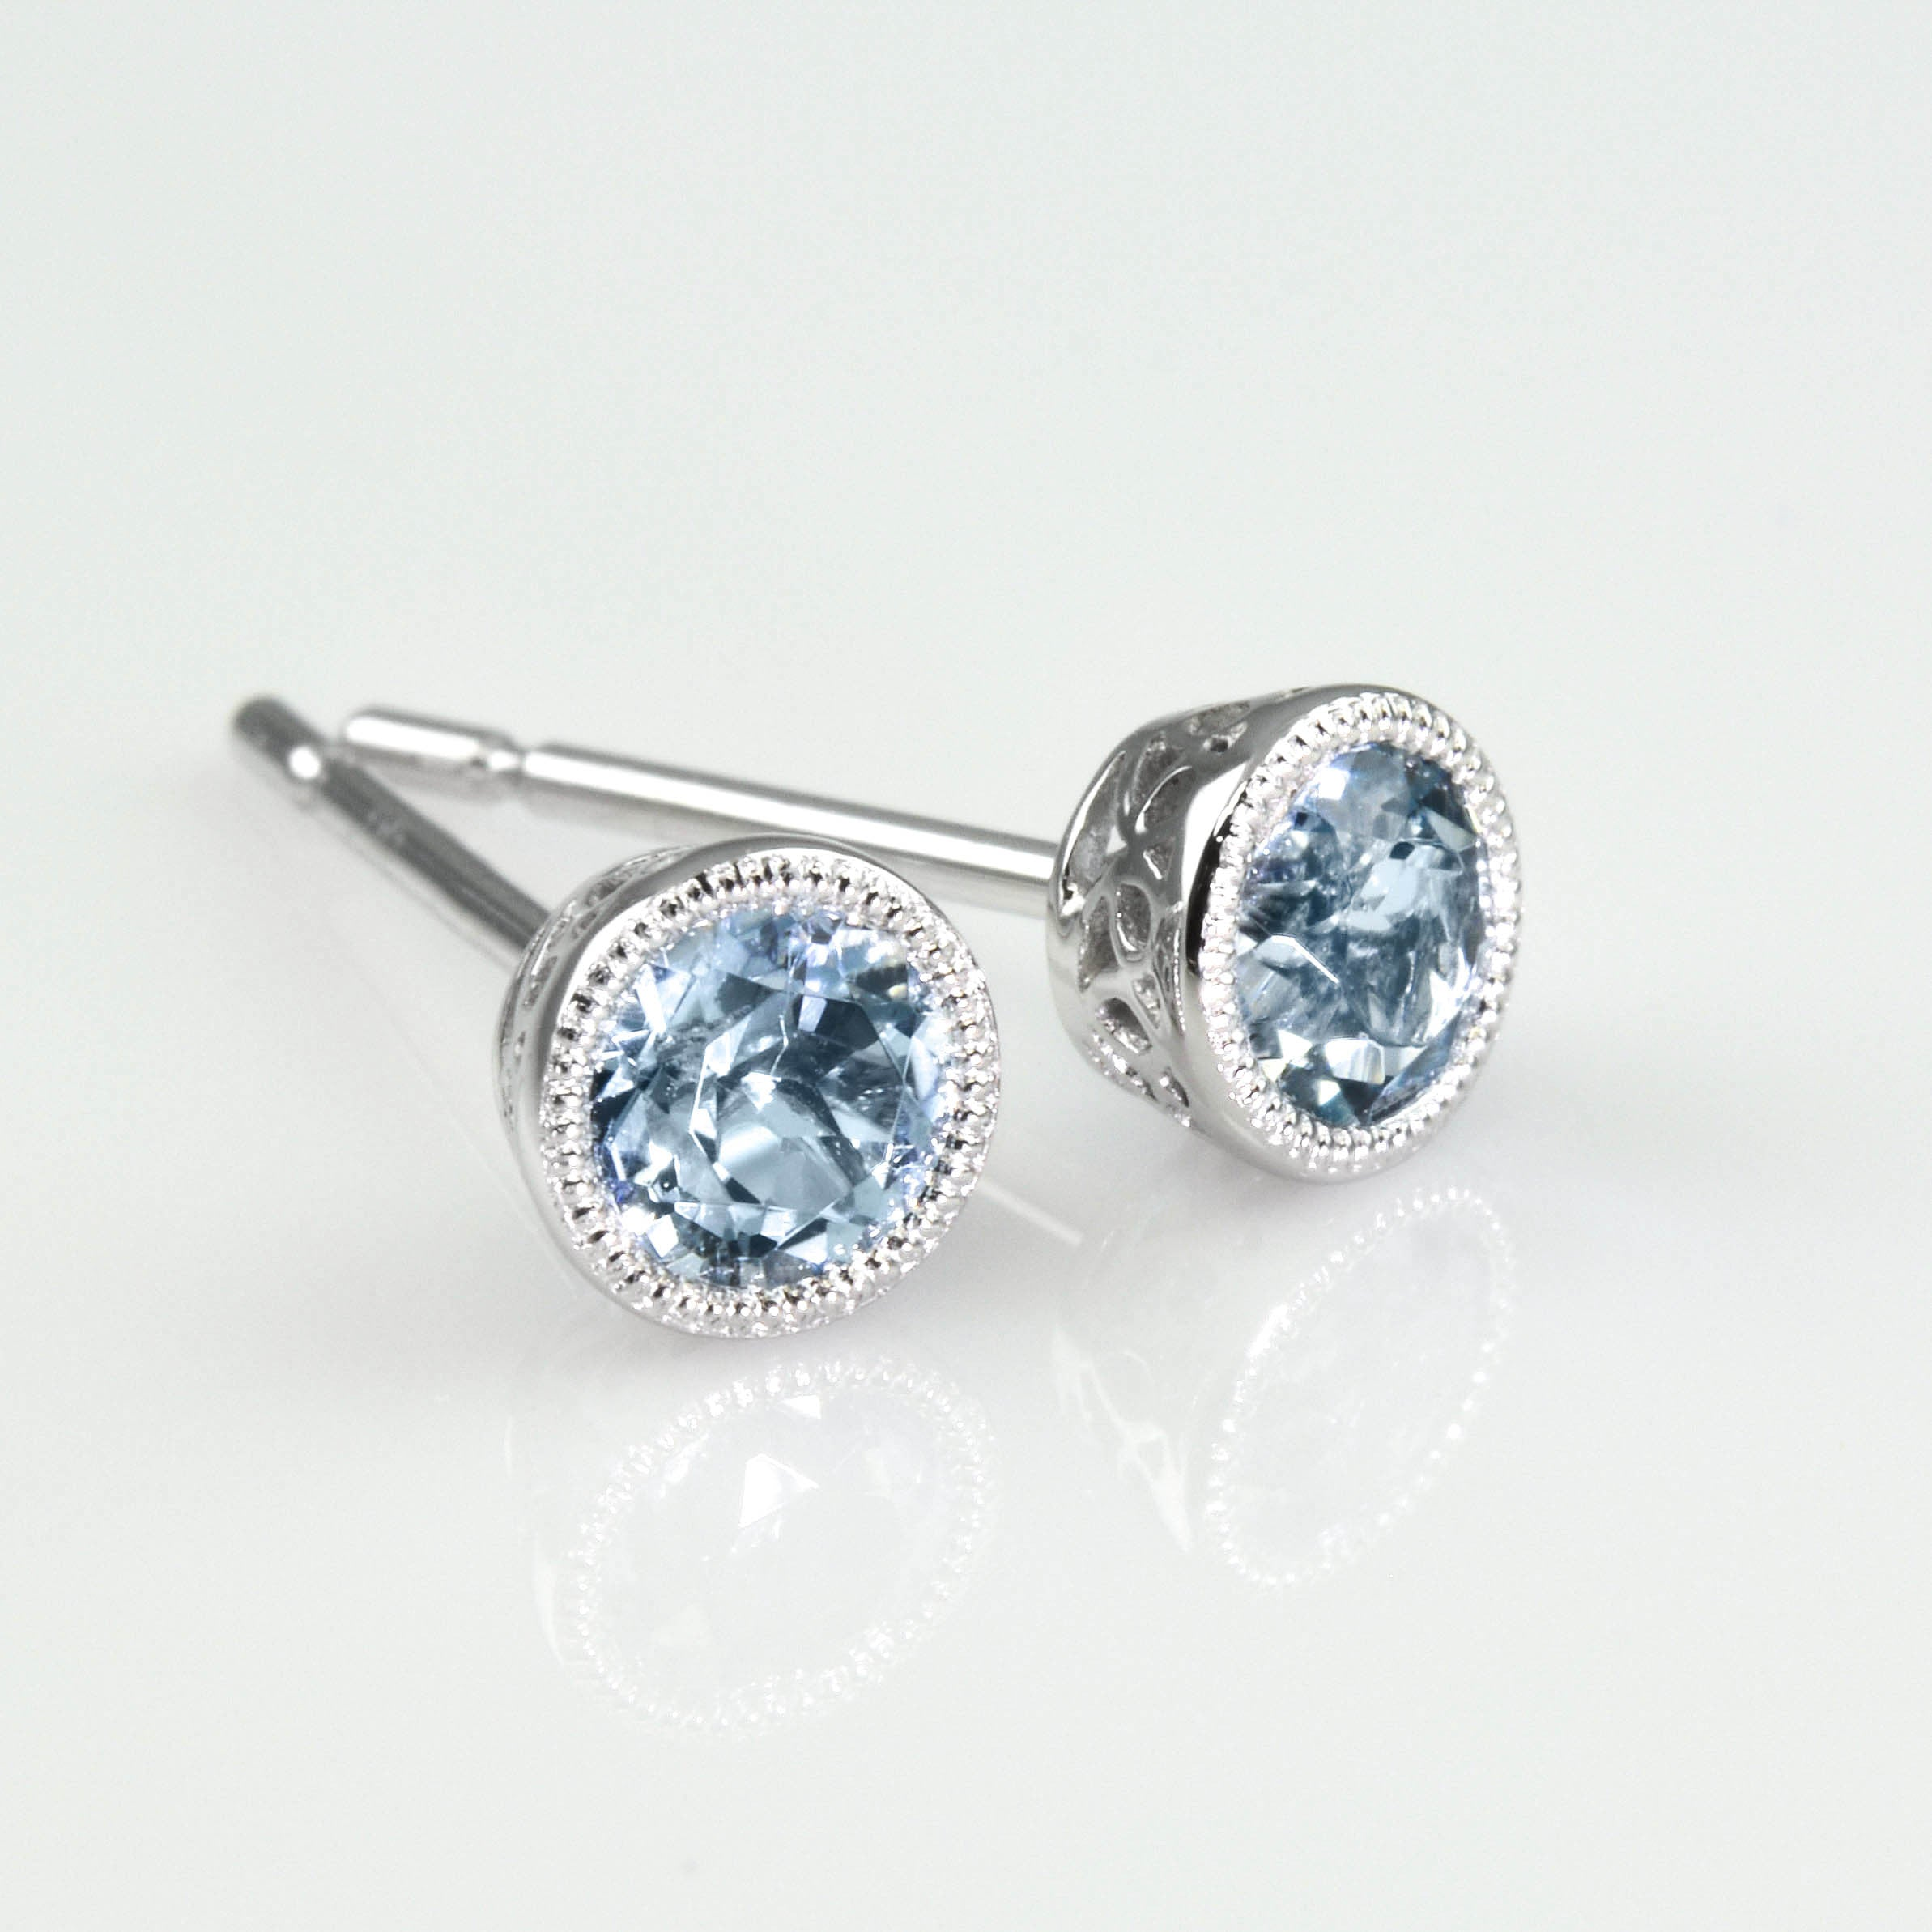 l aquamarine aqua studs stud marine jewelry eternity earrings